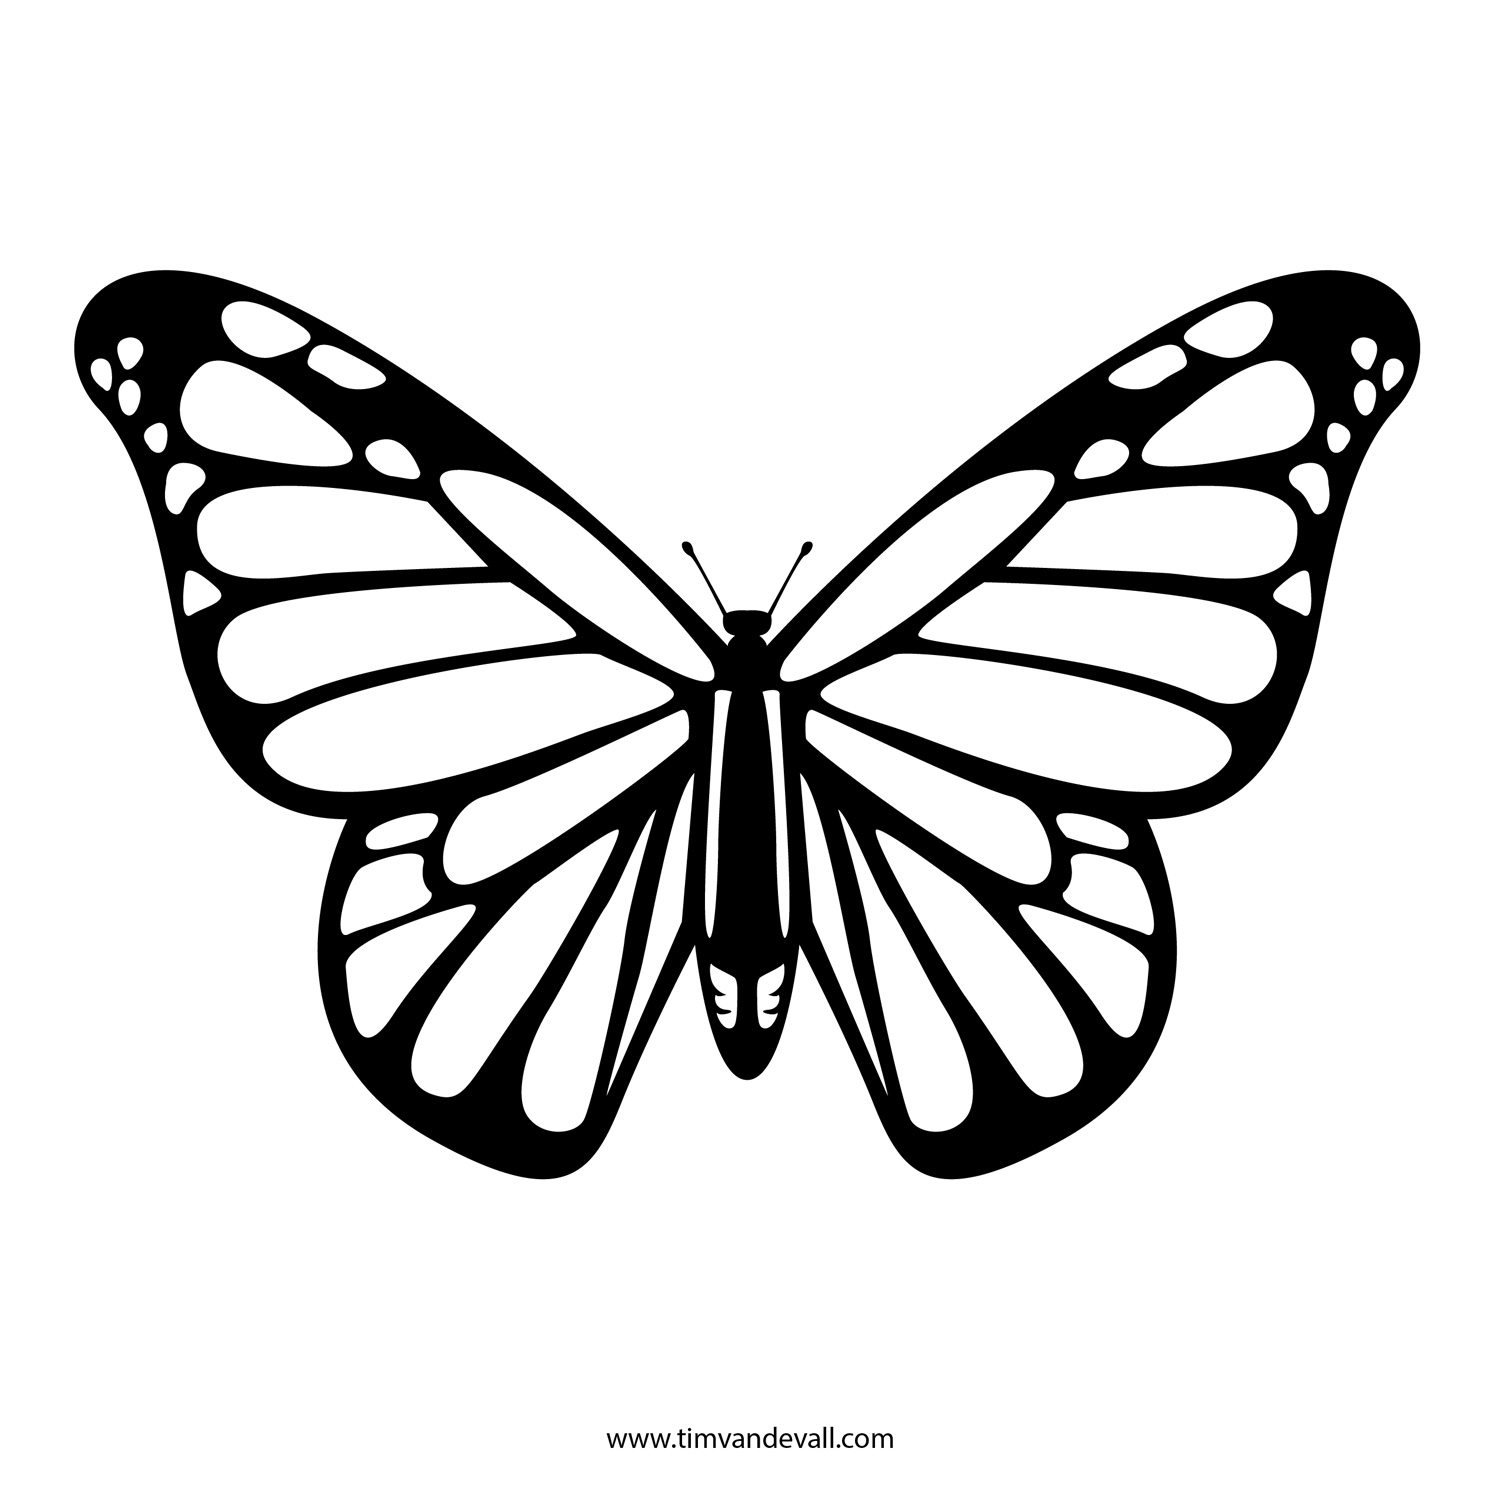 Butterflies Black And White Outline